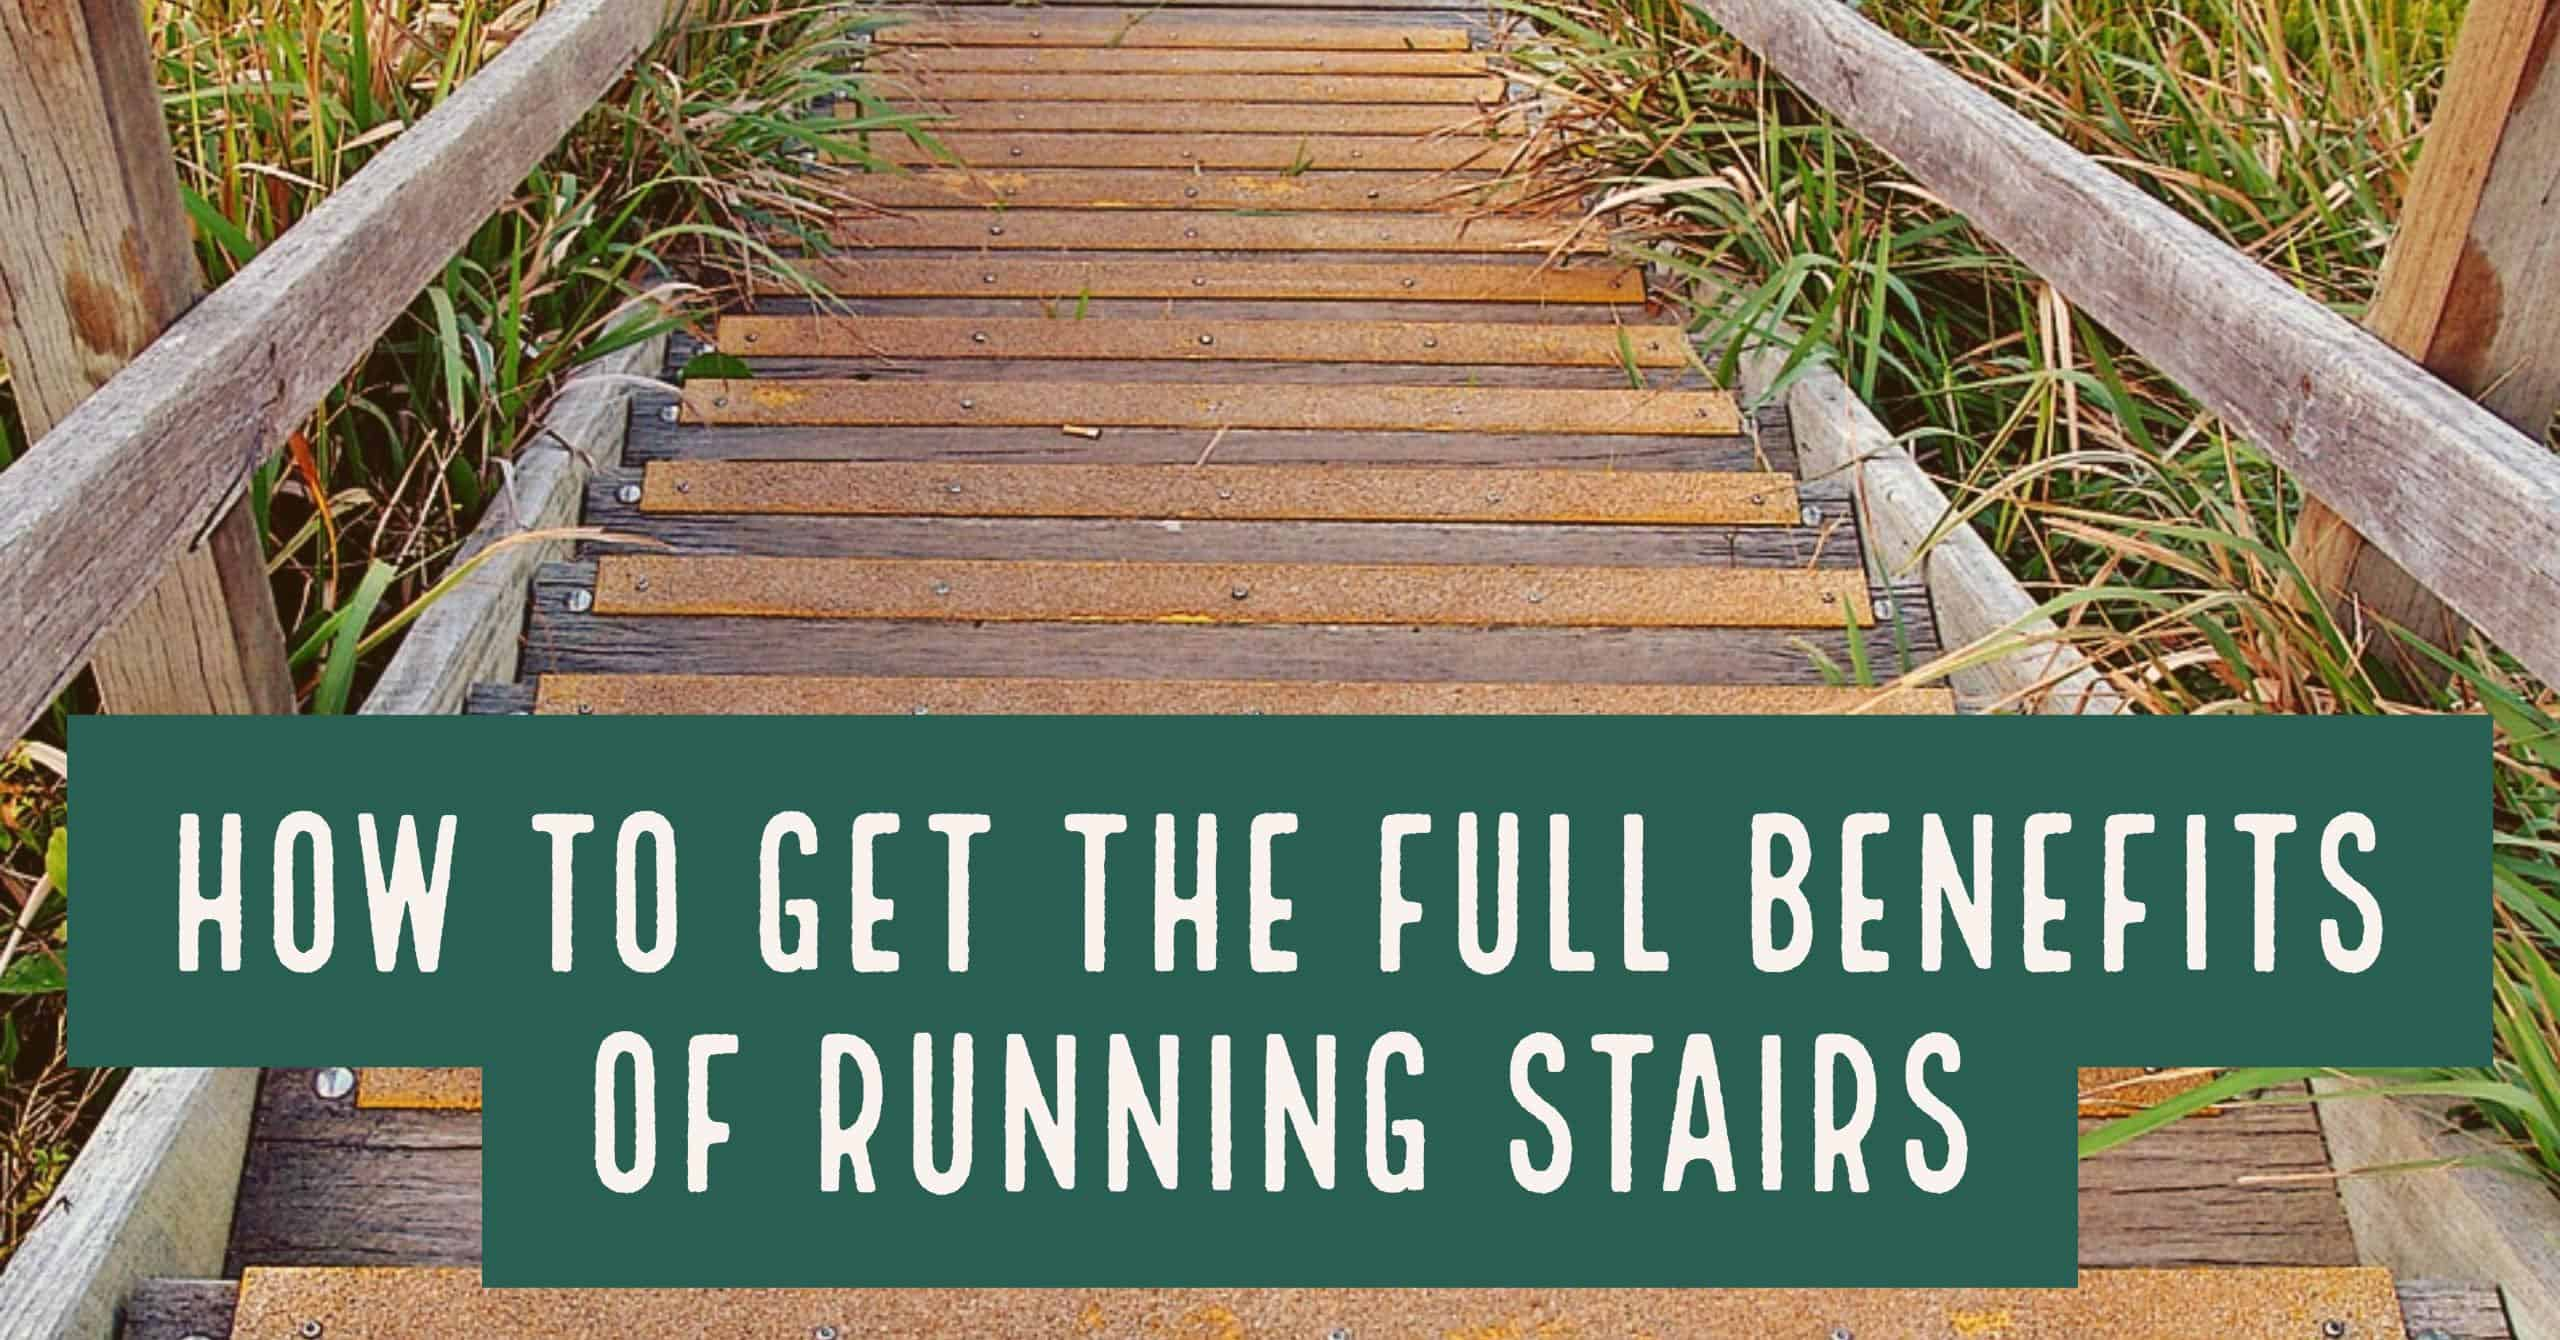 How to Get the Full Benefits of Running Stairs